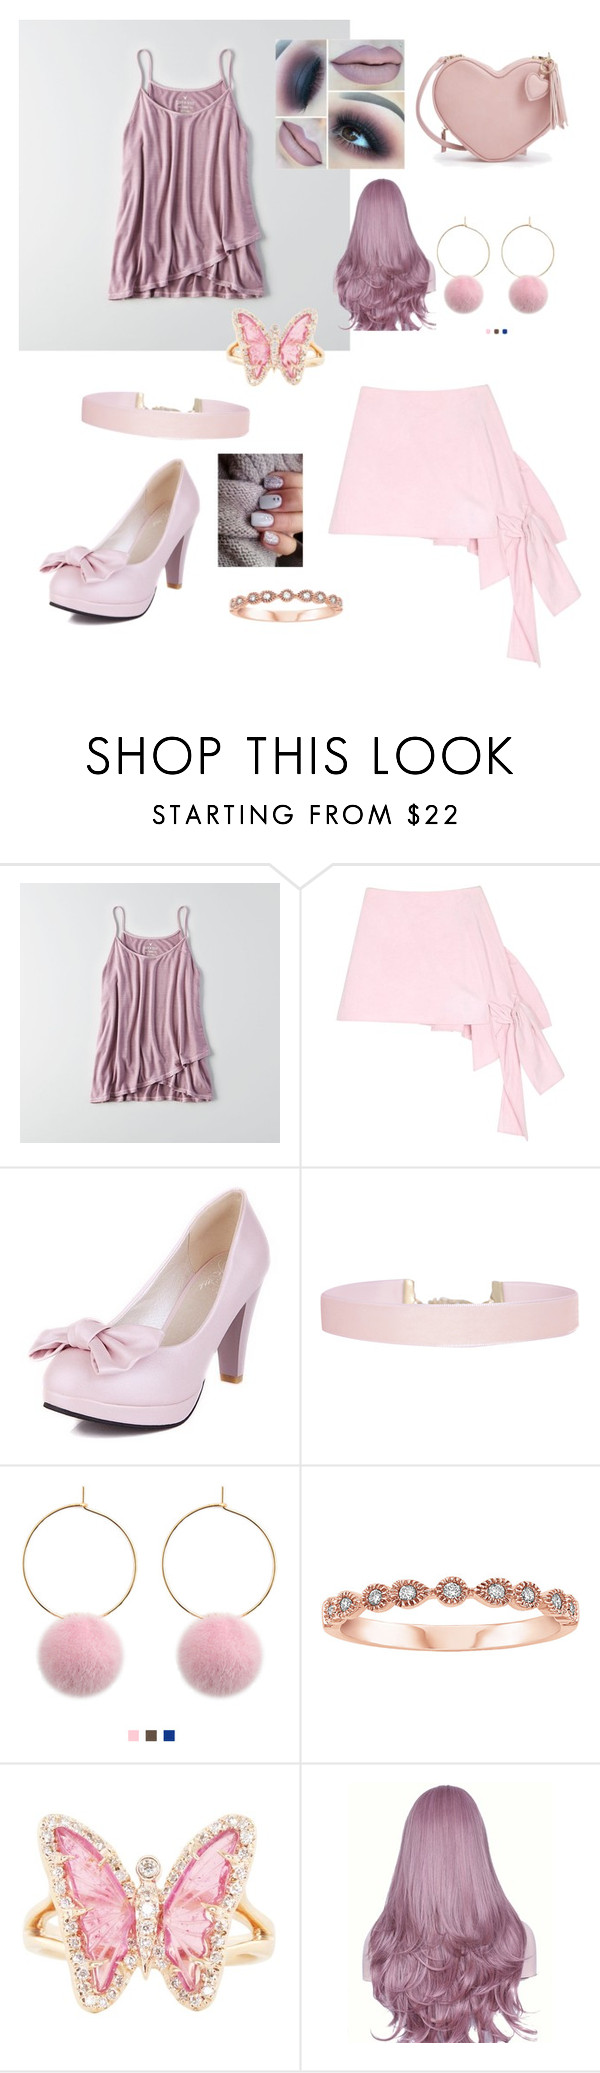 """Untitled #233"" by erinn-hutchins ❤ liked on Polyvore featuring American Eagle Outfitters, Danielle Romeril, Humble Chic and Luna Skye"